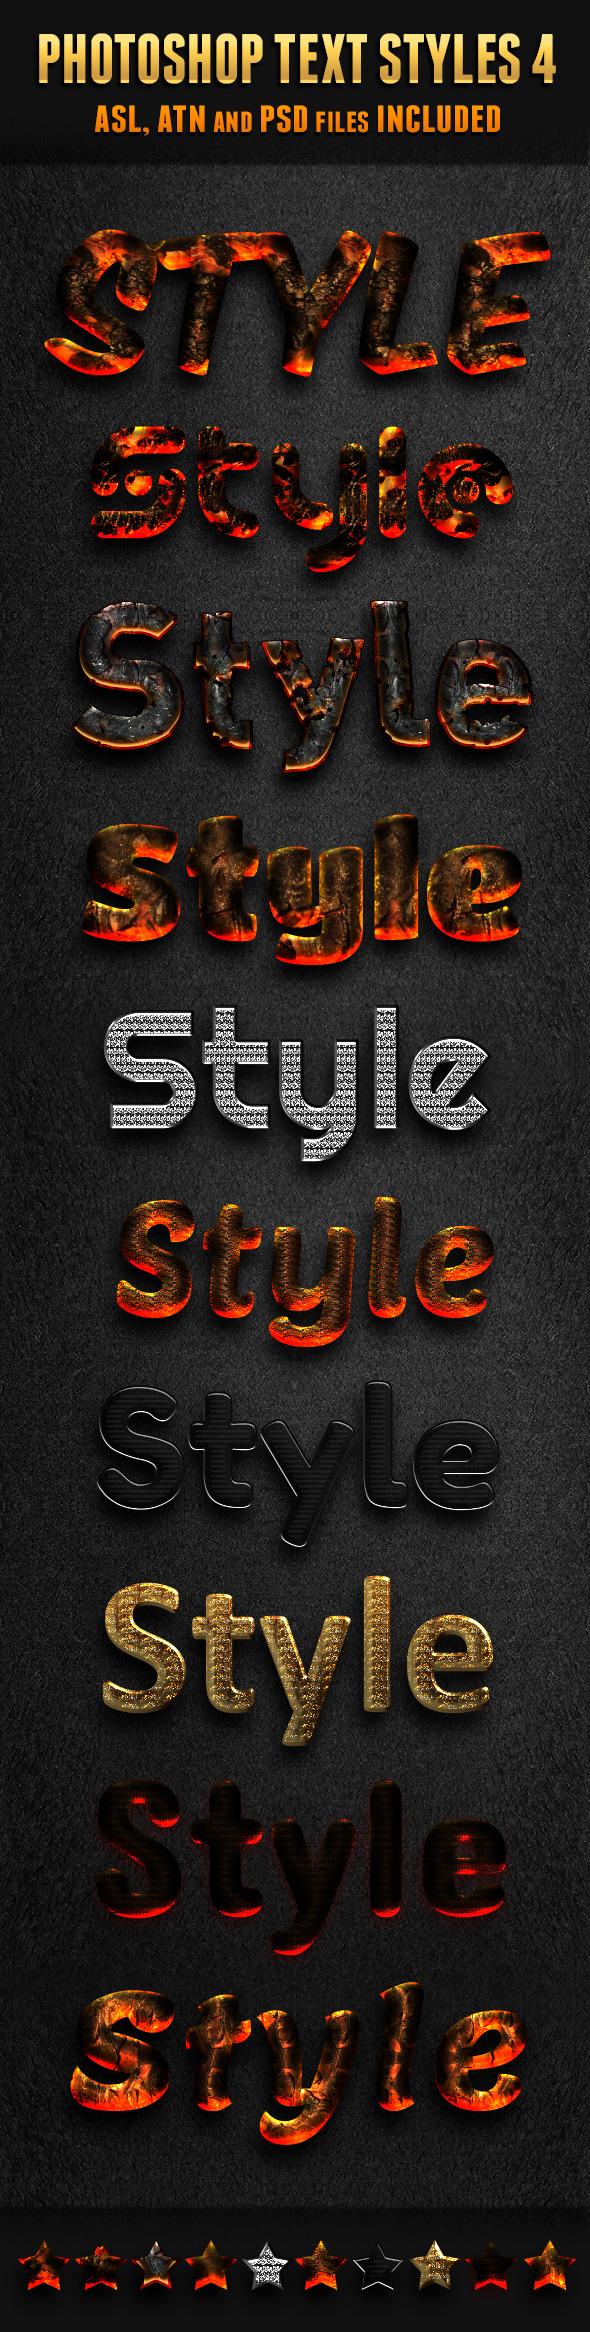 Photoshop Text Styles 4 - Text Effects Styles